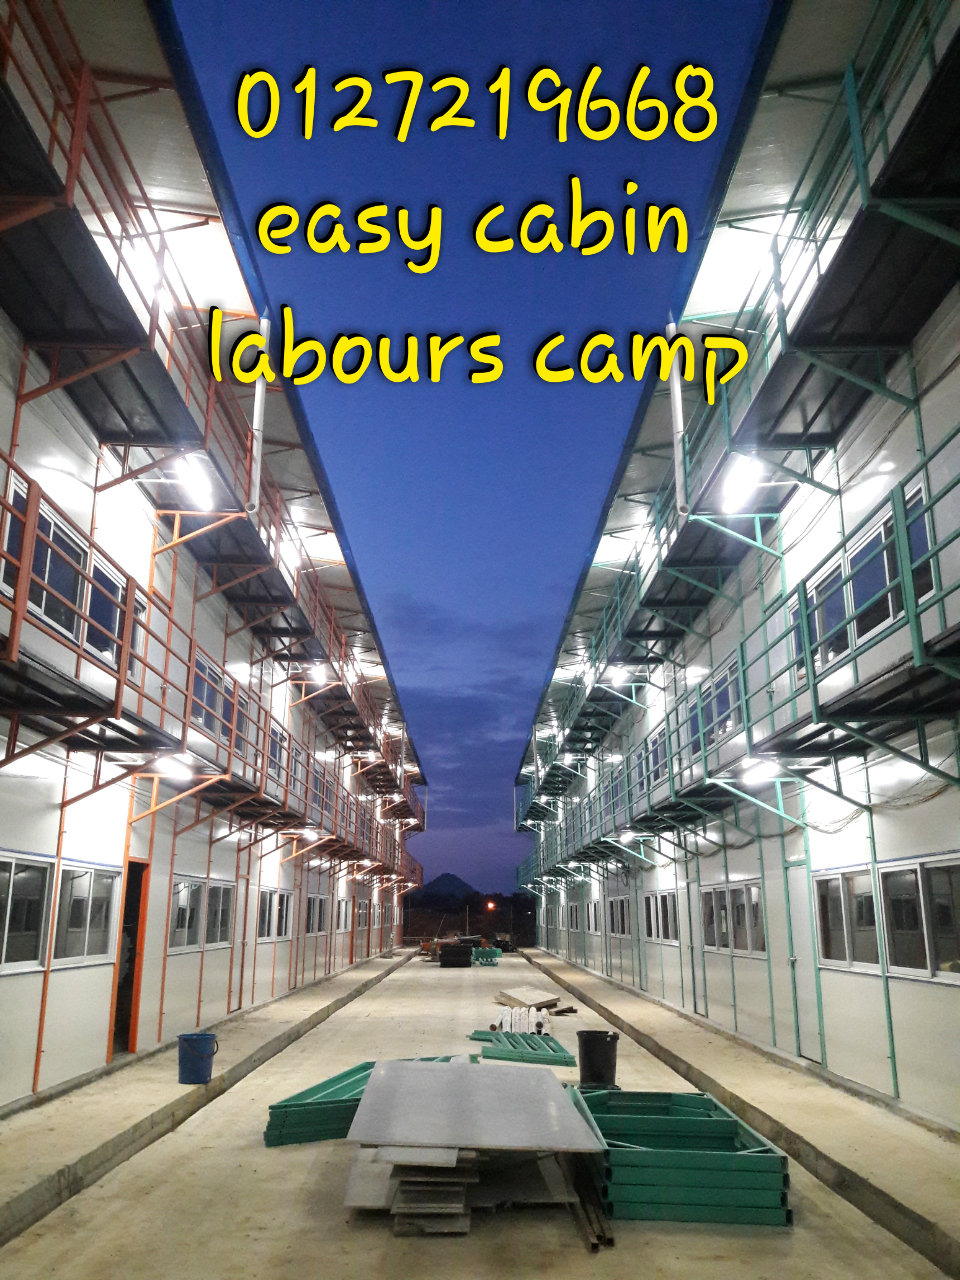 easy cabin, labour camp